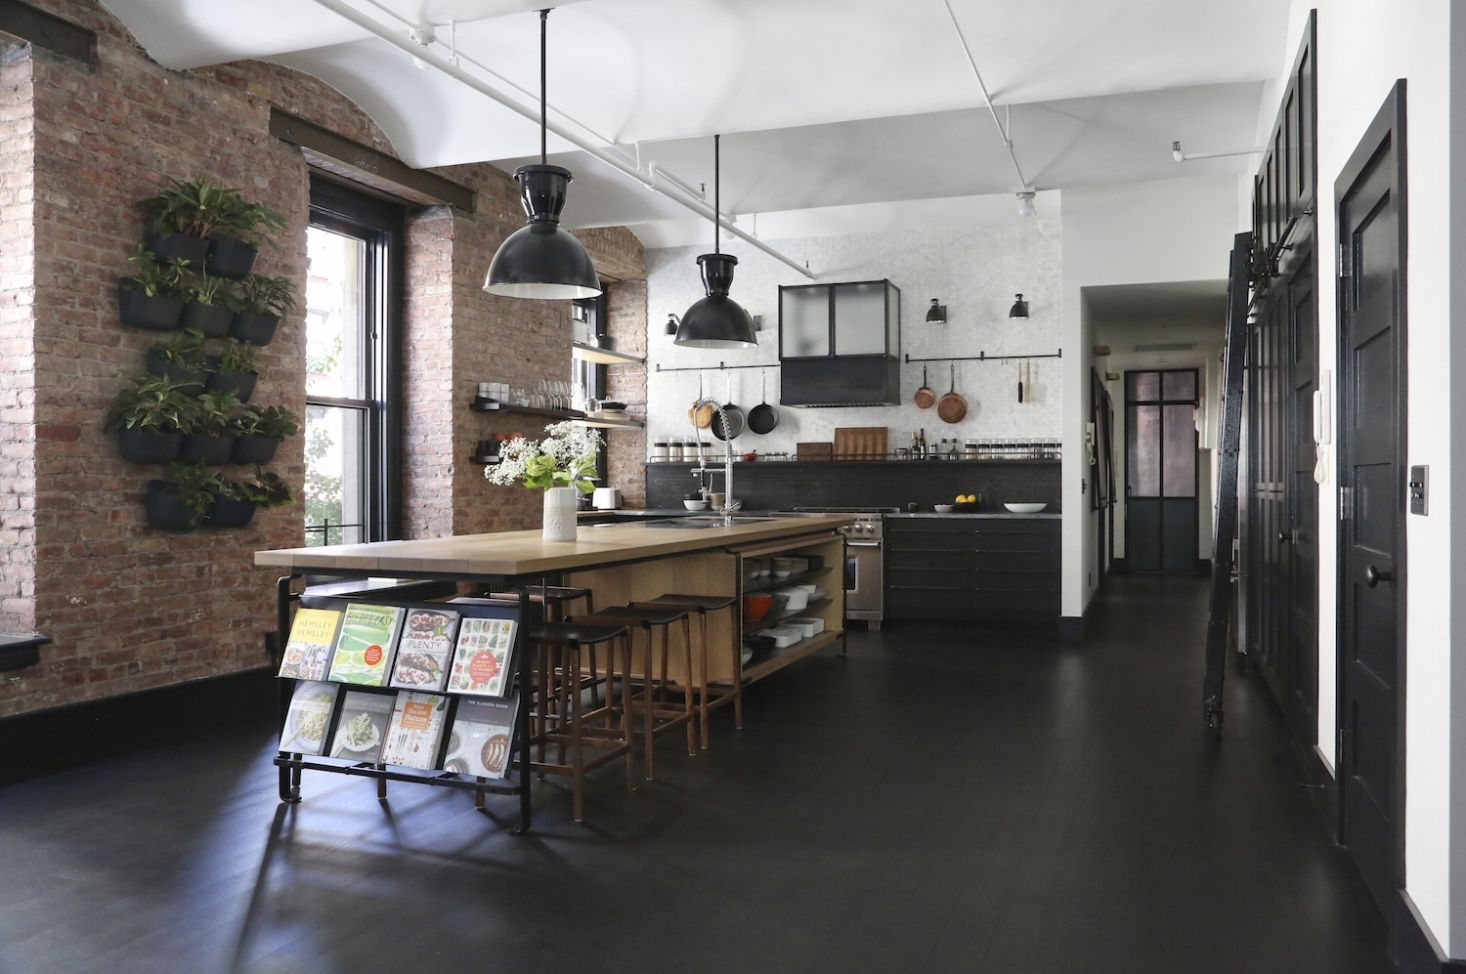 A Rugged Rustic Nyc Loft By Matt Bear Of Union Studio Remodelista Loft Style Homes Loft Kitchen Industrial Kitchen Design